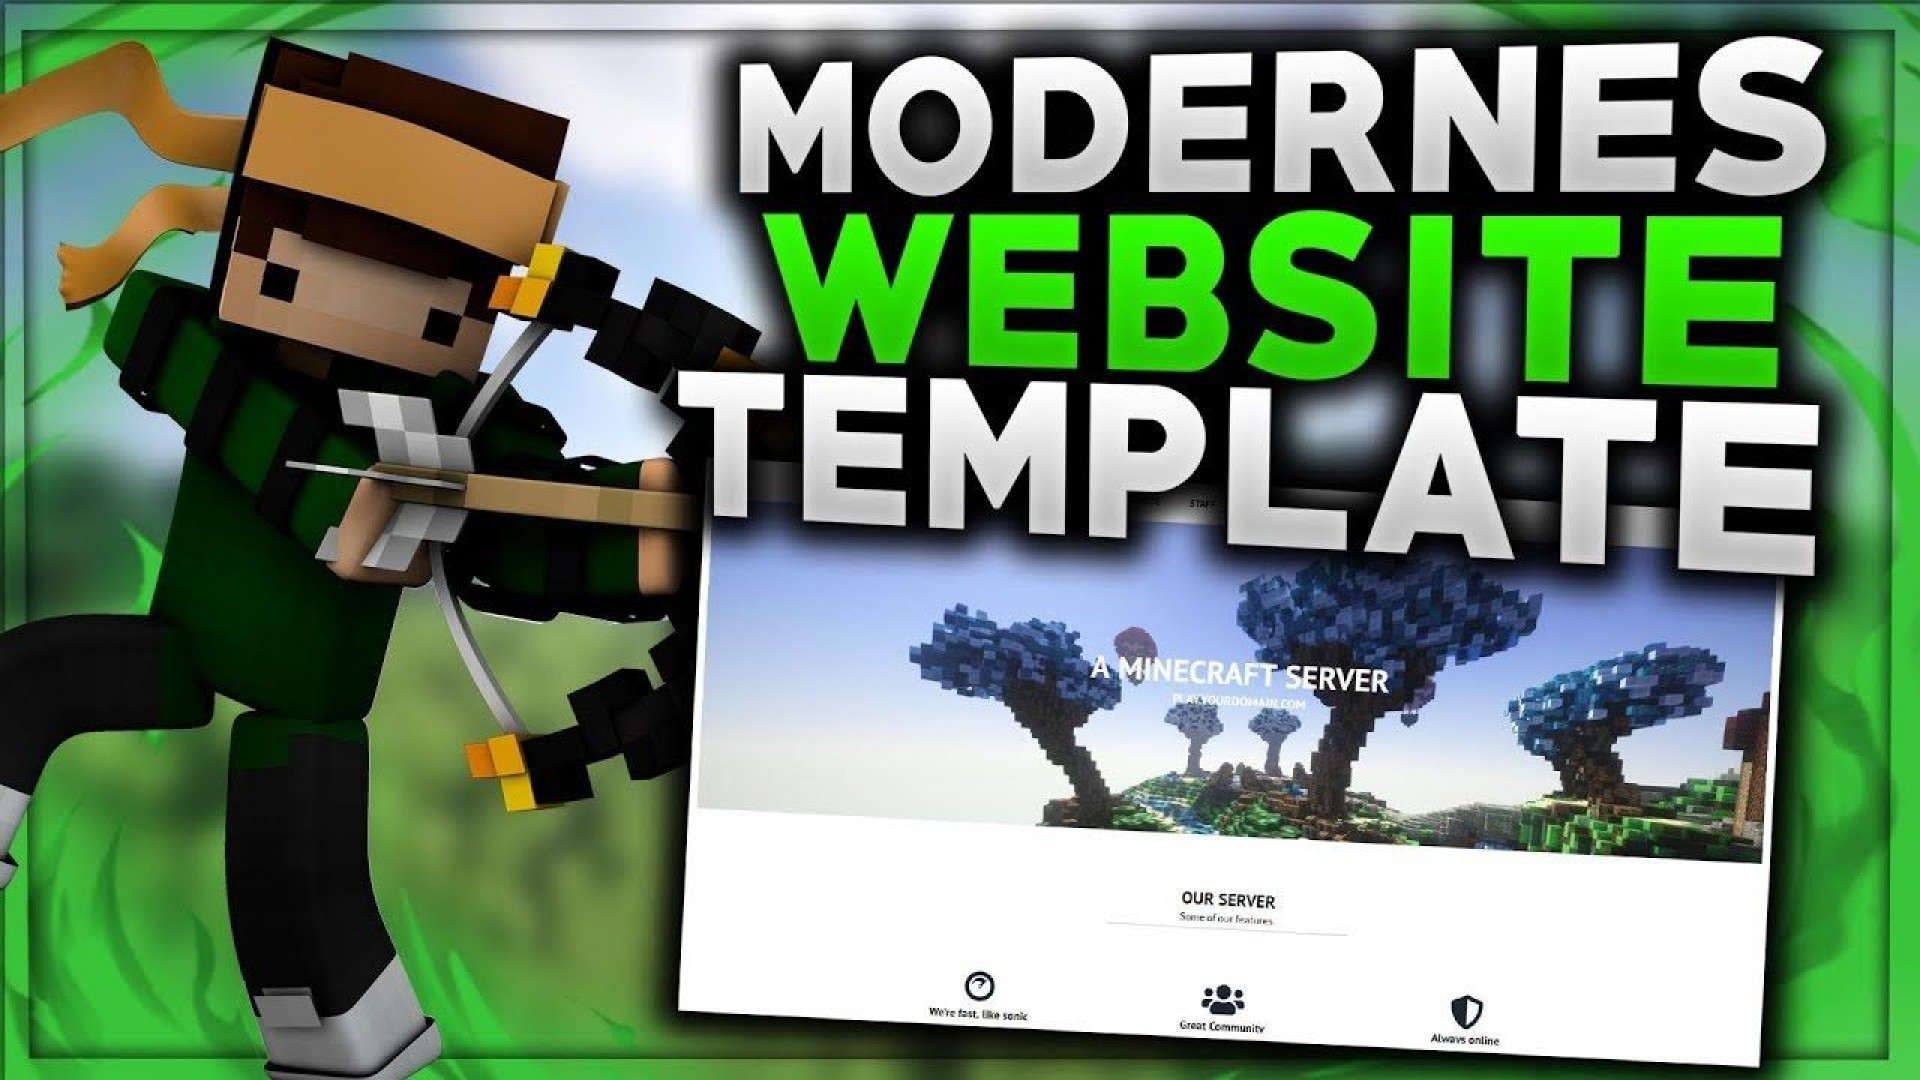 006 Astounding Minecraft Website Template Html Free Download Example 1920